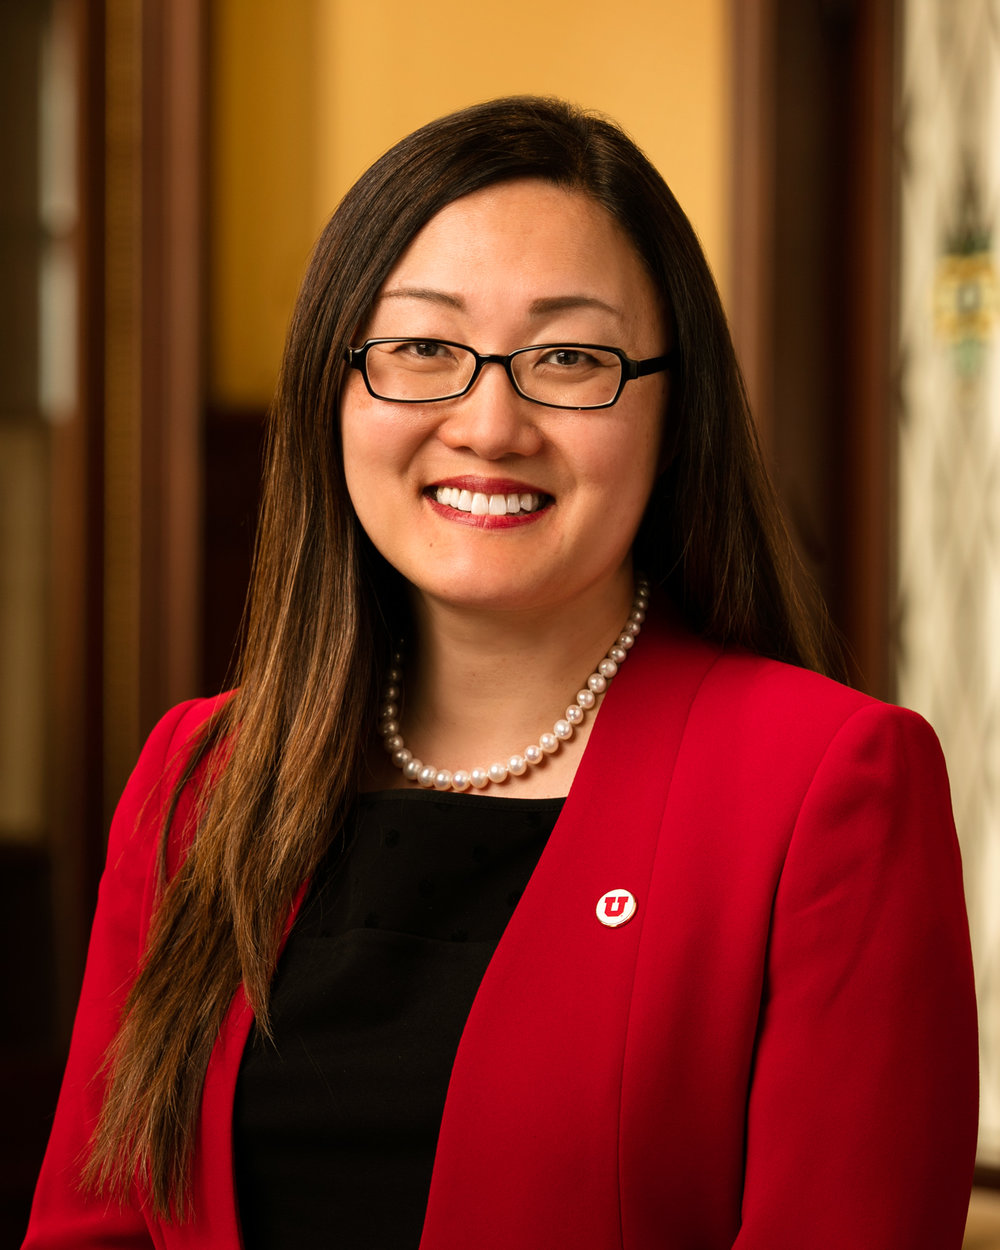 Jean Oh, M. Ed.            Managing Director of Global Internships Jean Oh joined the University of Utah in 2013 and served as the first Director of UAC Student Services and Main Campus Operations until 2017 when she joined the Hinckley Institute of Politics as the Managing Director of the Global Internship Program. jean.oh@hinckley.utah.edu